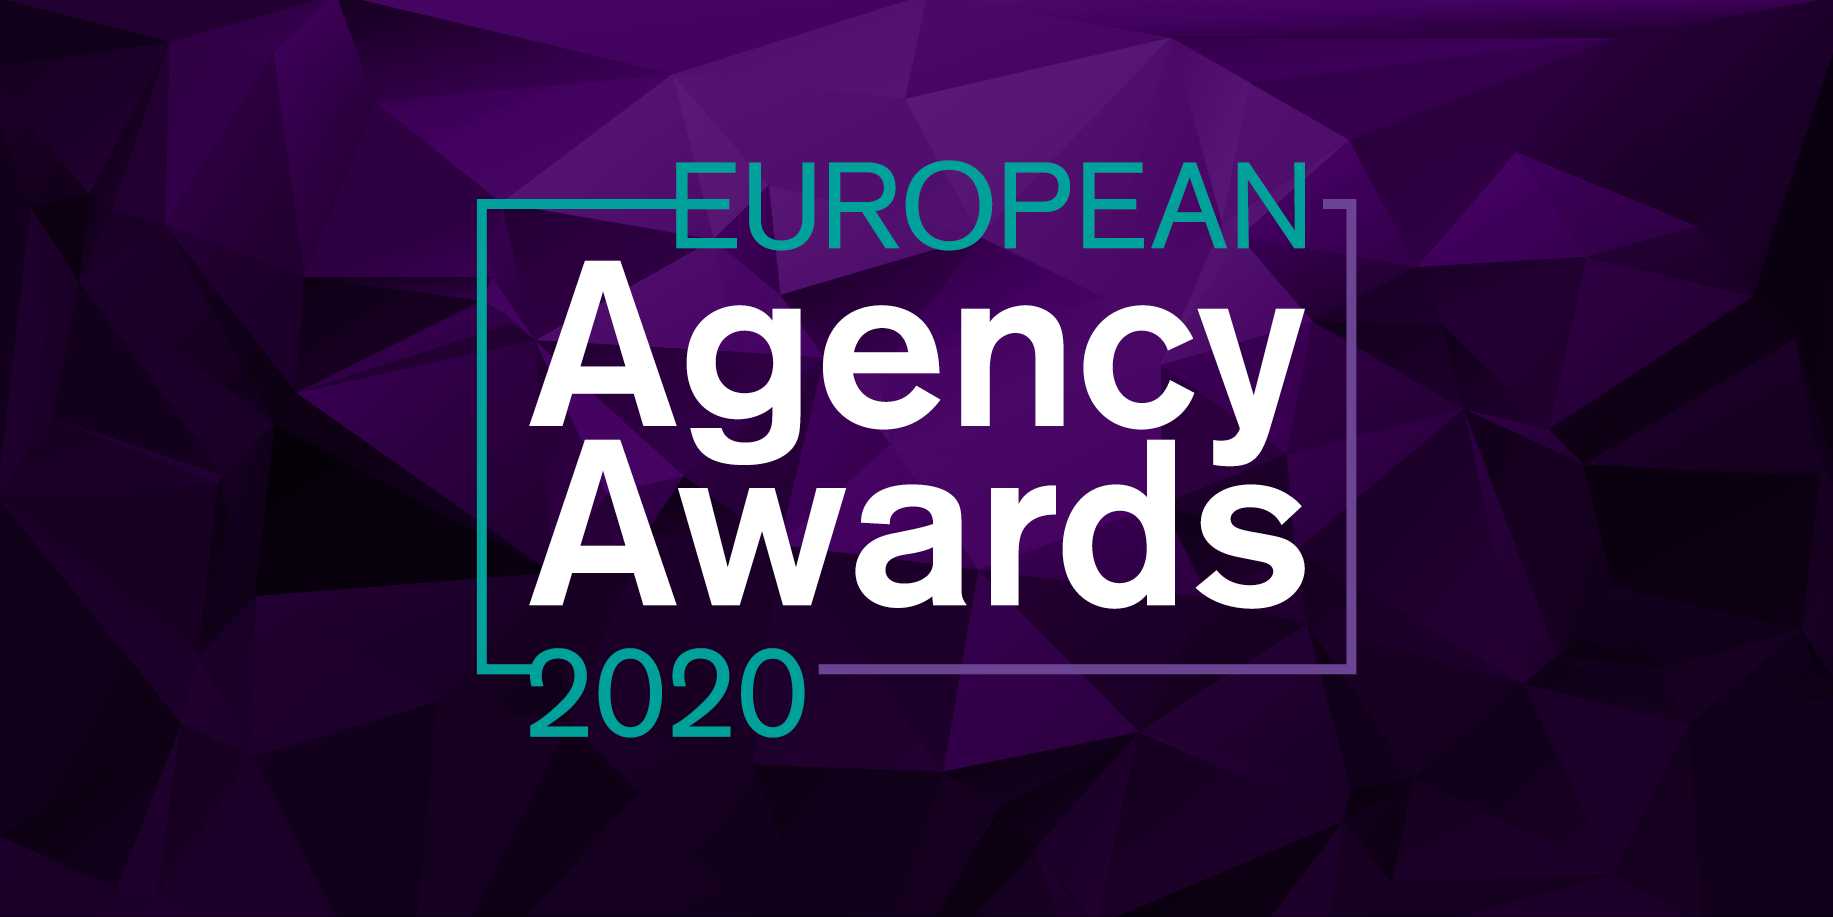 Finalist, 3 Awards Including B2B Agency of the Year and PR Agency of the Year, European Agency Awards 2020